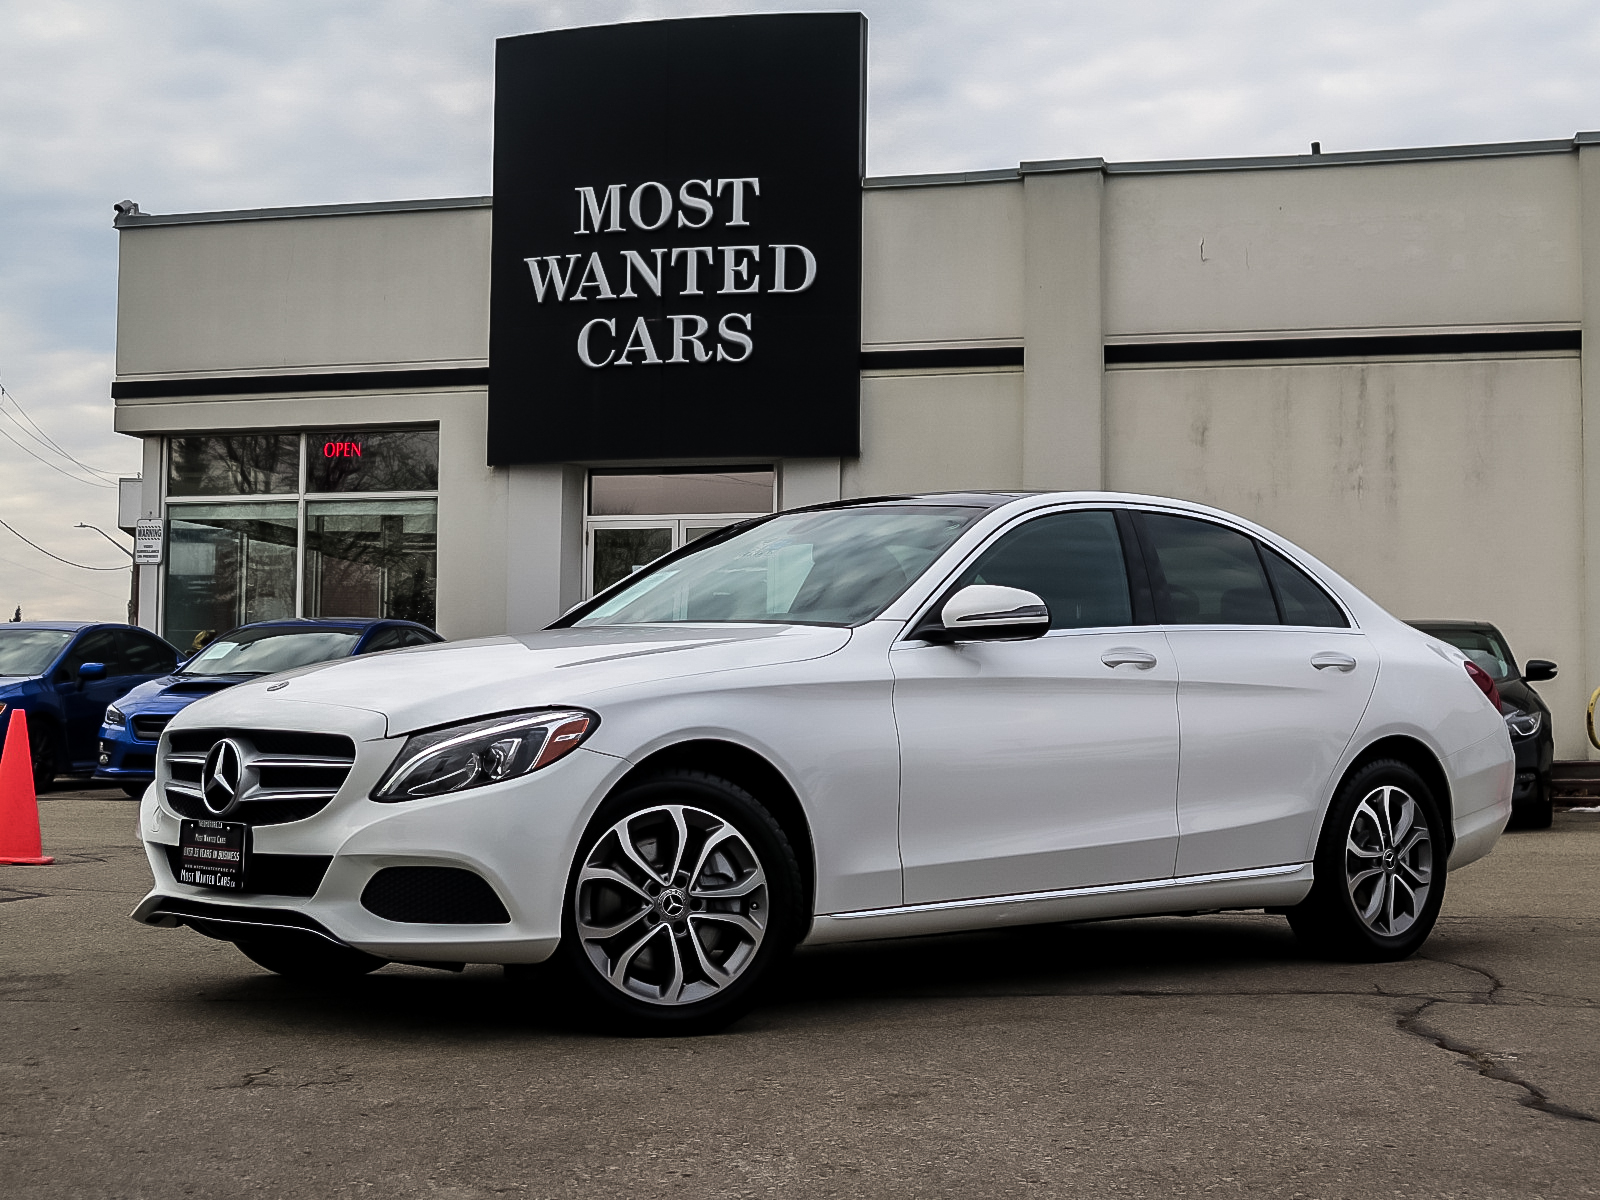 used 2018 Mercedes-Benz C300 car, priced at $35,962